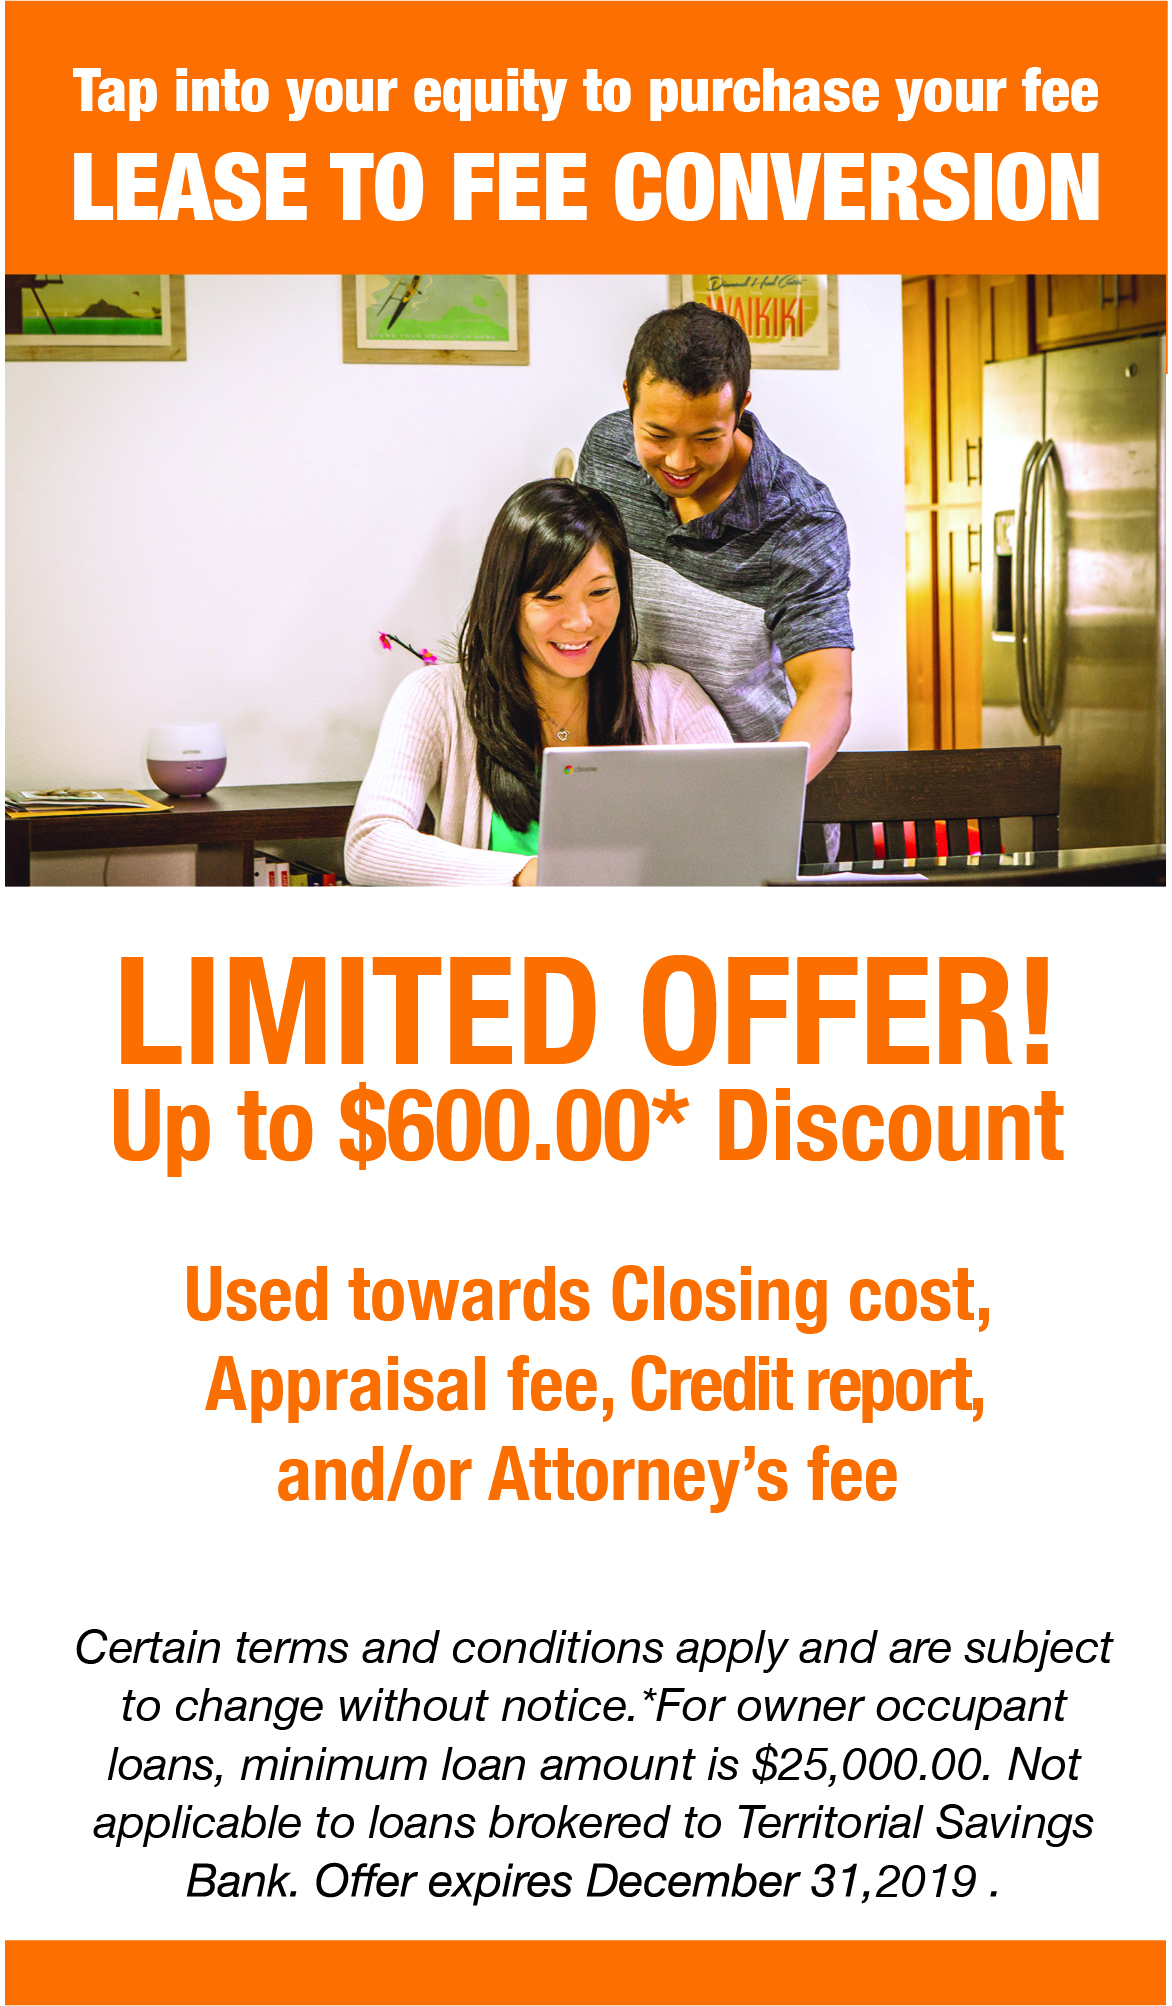 Tap into your equity to purchase your fee. Lease to Fee Conversion. Limited Offer! Up to $600.00 Discount for owner occupant loans, minimum loan amount is $25,000. Discount can be used towards Closing costs, Appraisal fee, Credit report, and/or Attorney's fee. Certain terms and conditions apply and are subject to change without notice. Not applicable to loans brokered to Territorial Savings Bank. Offers expires December 31, 2019. Member FDIC. Equal Housing Lender.